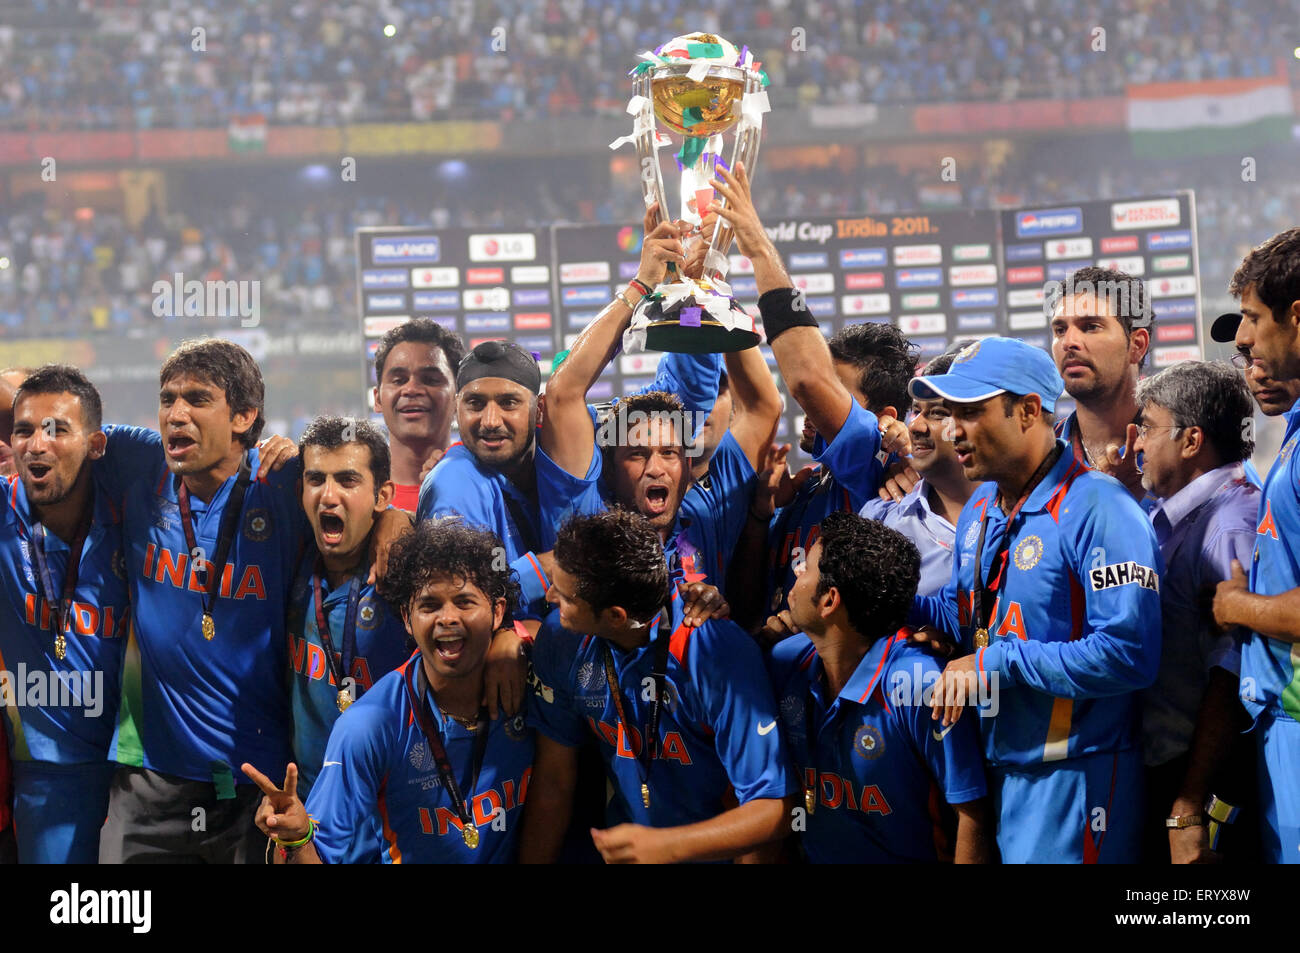 essay of world cup 2011 Essay on cricket world cup 2015 essay paragraph icc world cup essay on cricket world cup 2015 cricket is one of the most admired sports in the globe, particular it is most preferred in asia, africa and australia, preliminary it was just played in the england however at this time it is the part of international game.